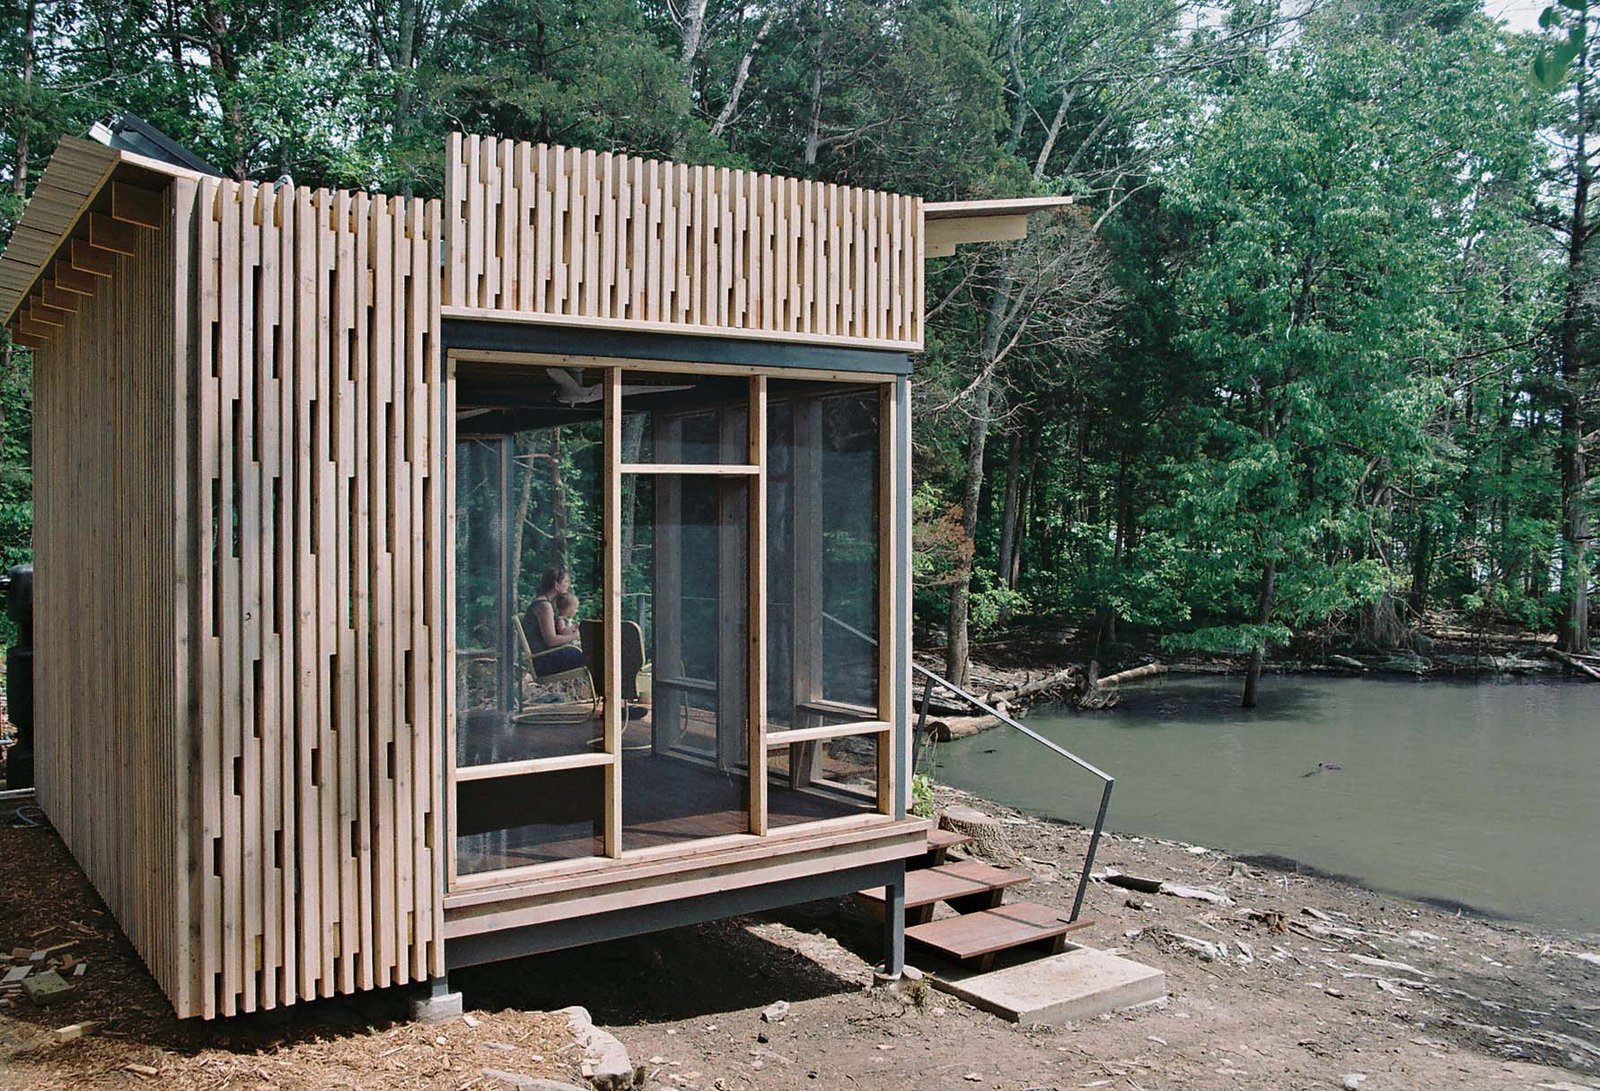 Off The Grid Prefab Homes Articles About Grid Prefab Cabin Completely Tune Surroundings On